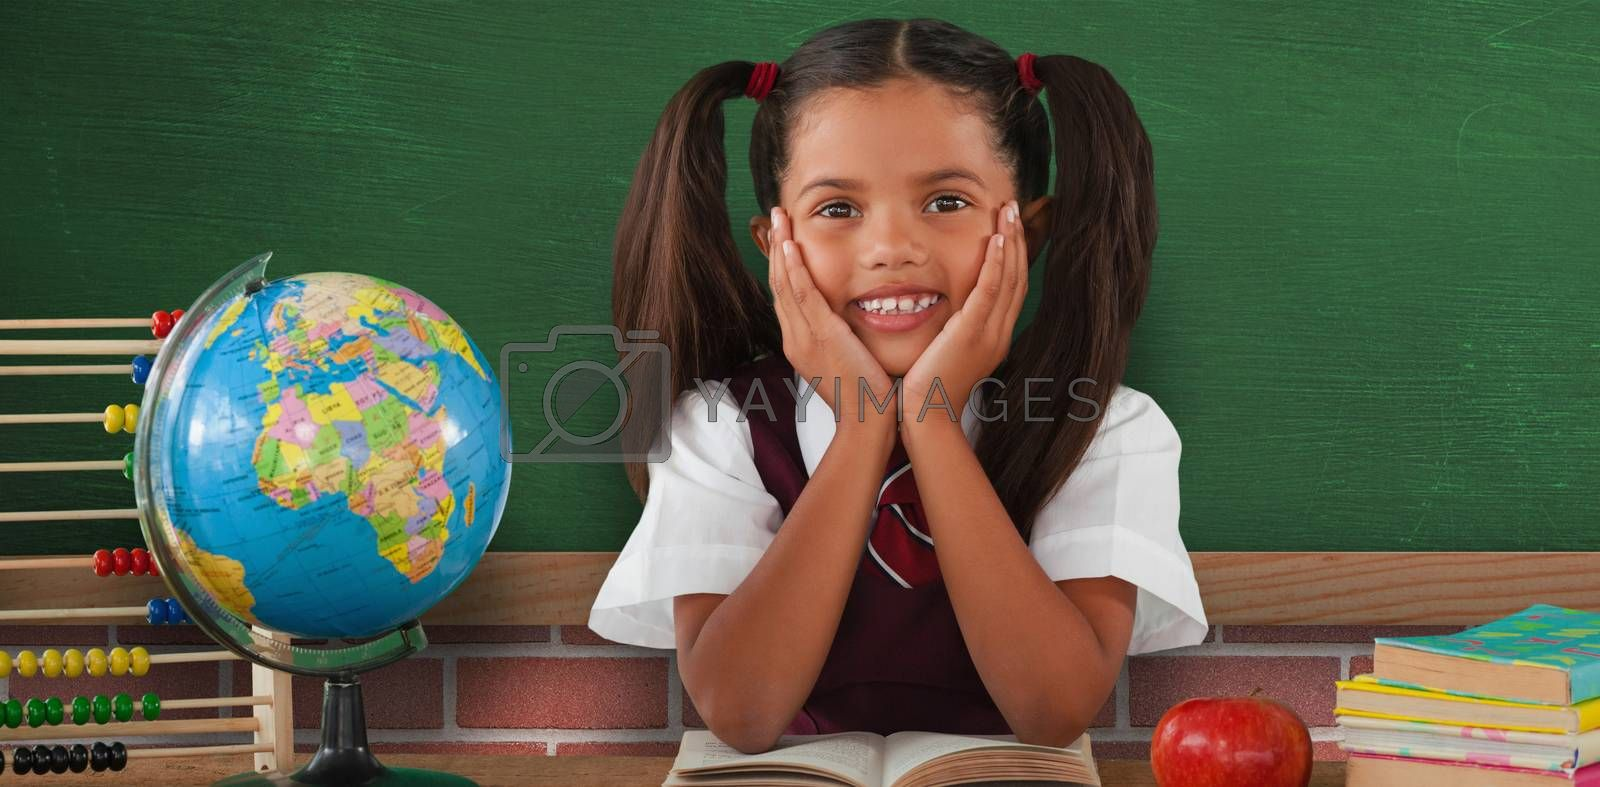 Composite image of schoolgirl leaning by globe and books by Wavebreakmedia